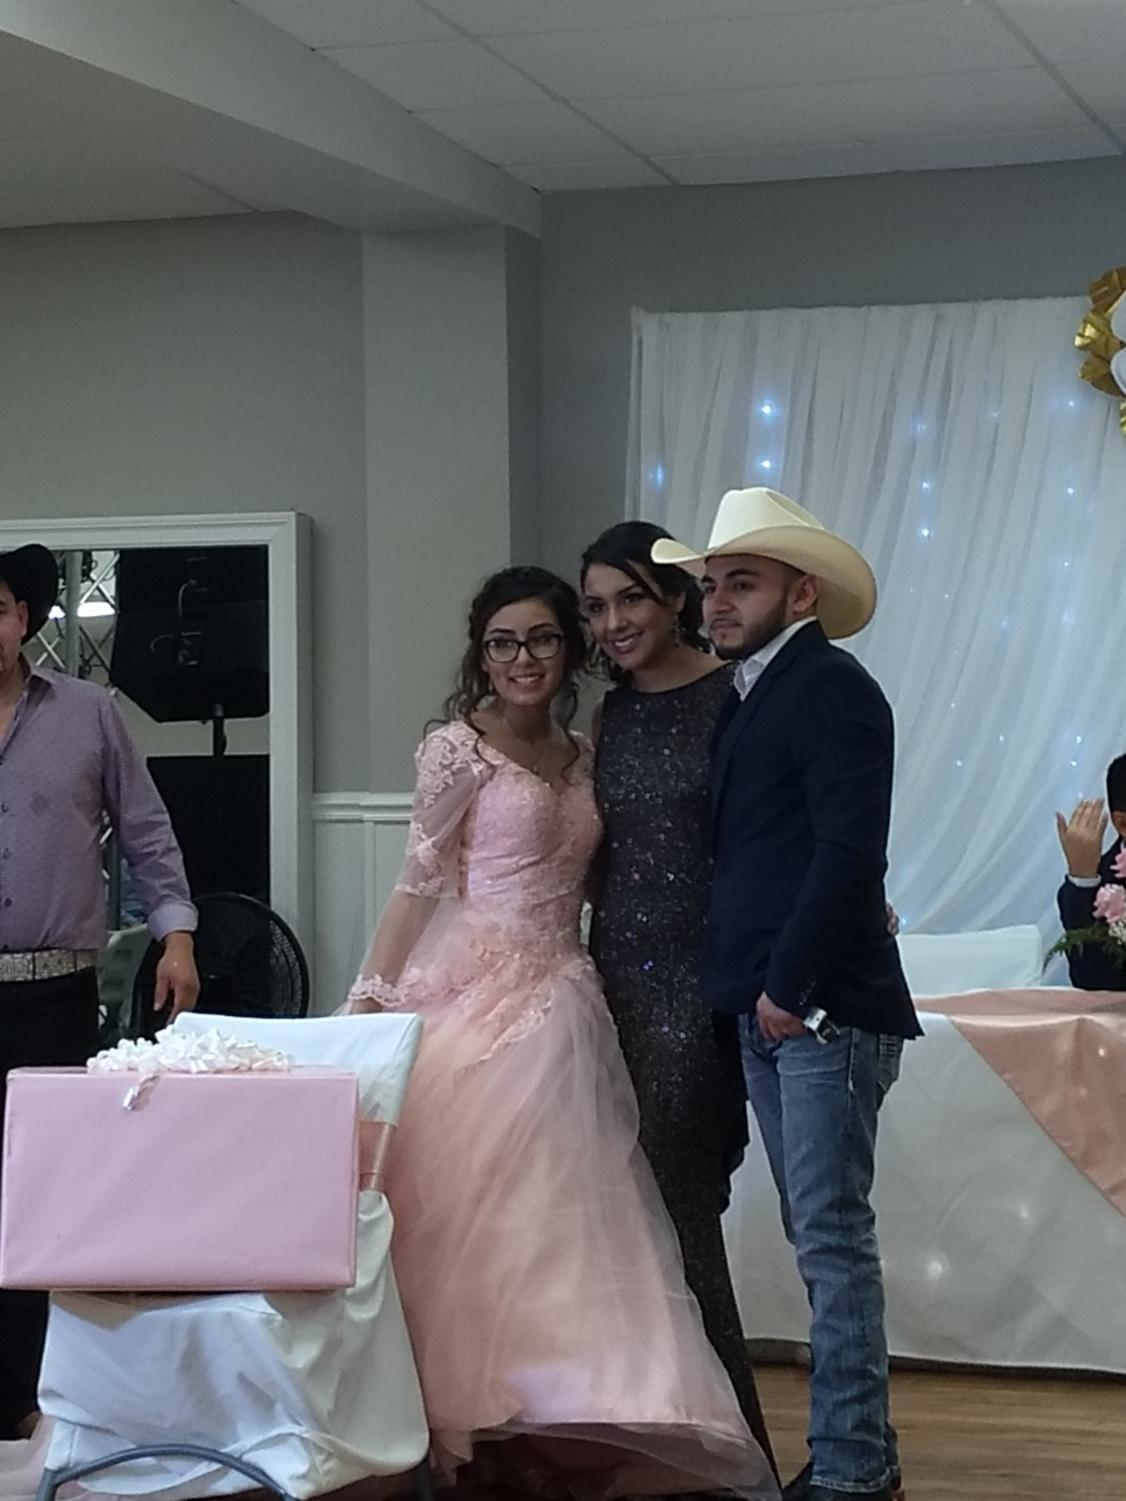 Alondra Mireles poses for a photo with her aunt and uncle after receiving a gift from them.